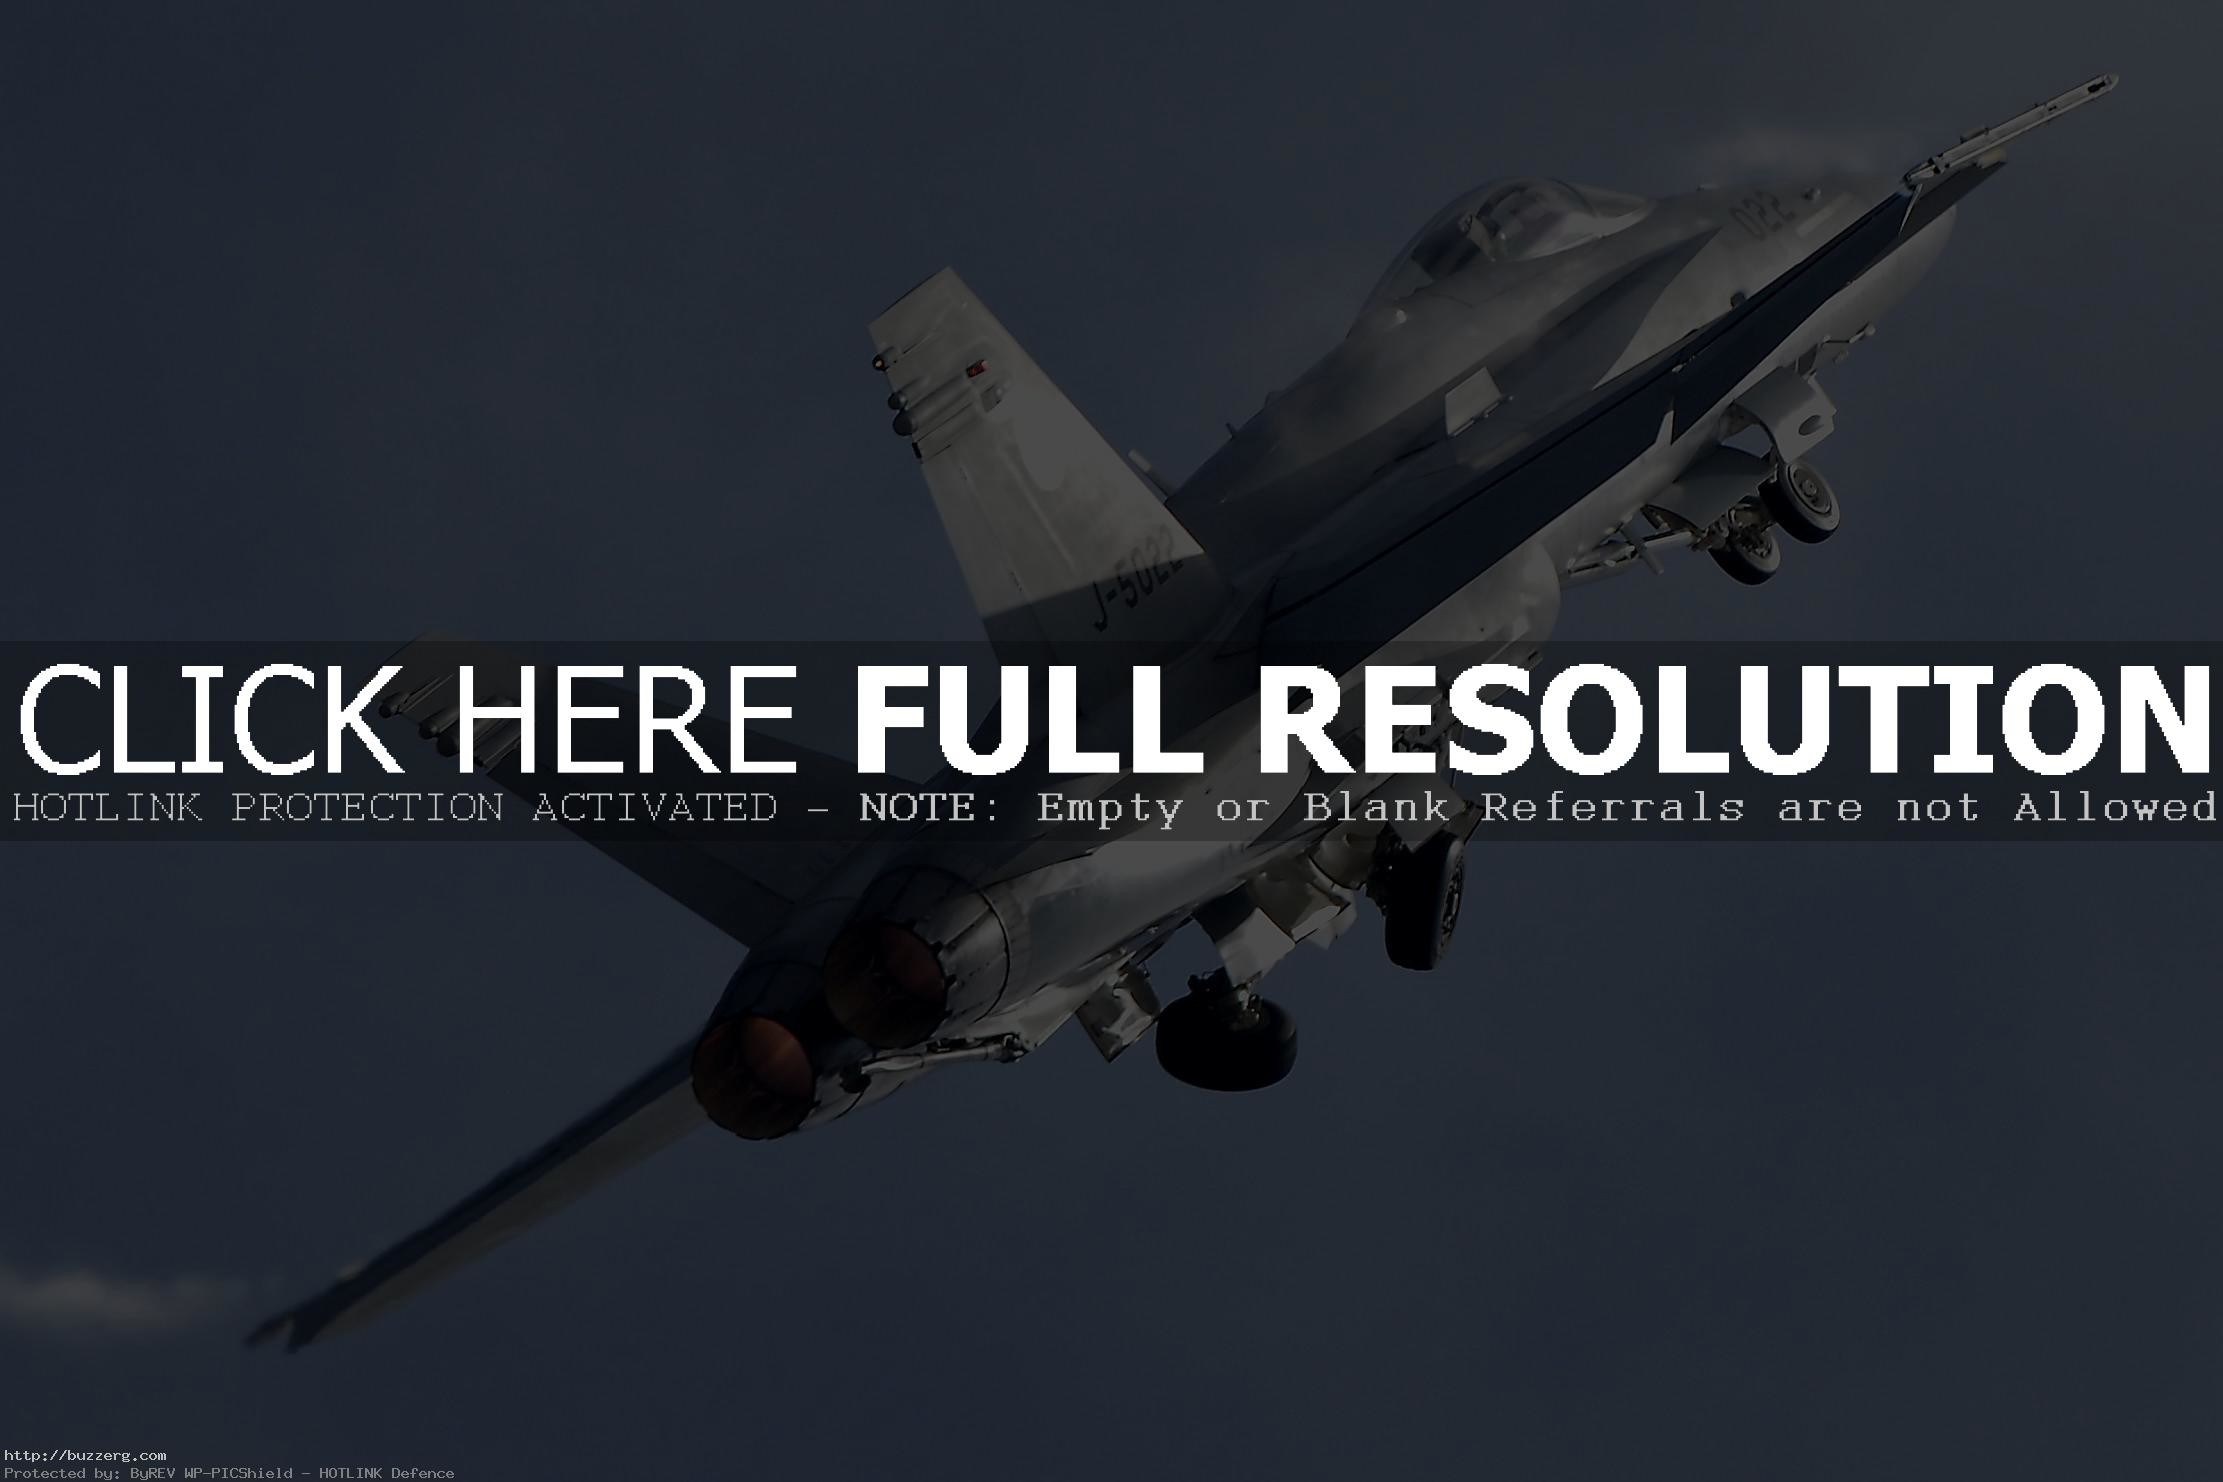 f 18 wallpaper hd (77+ images)